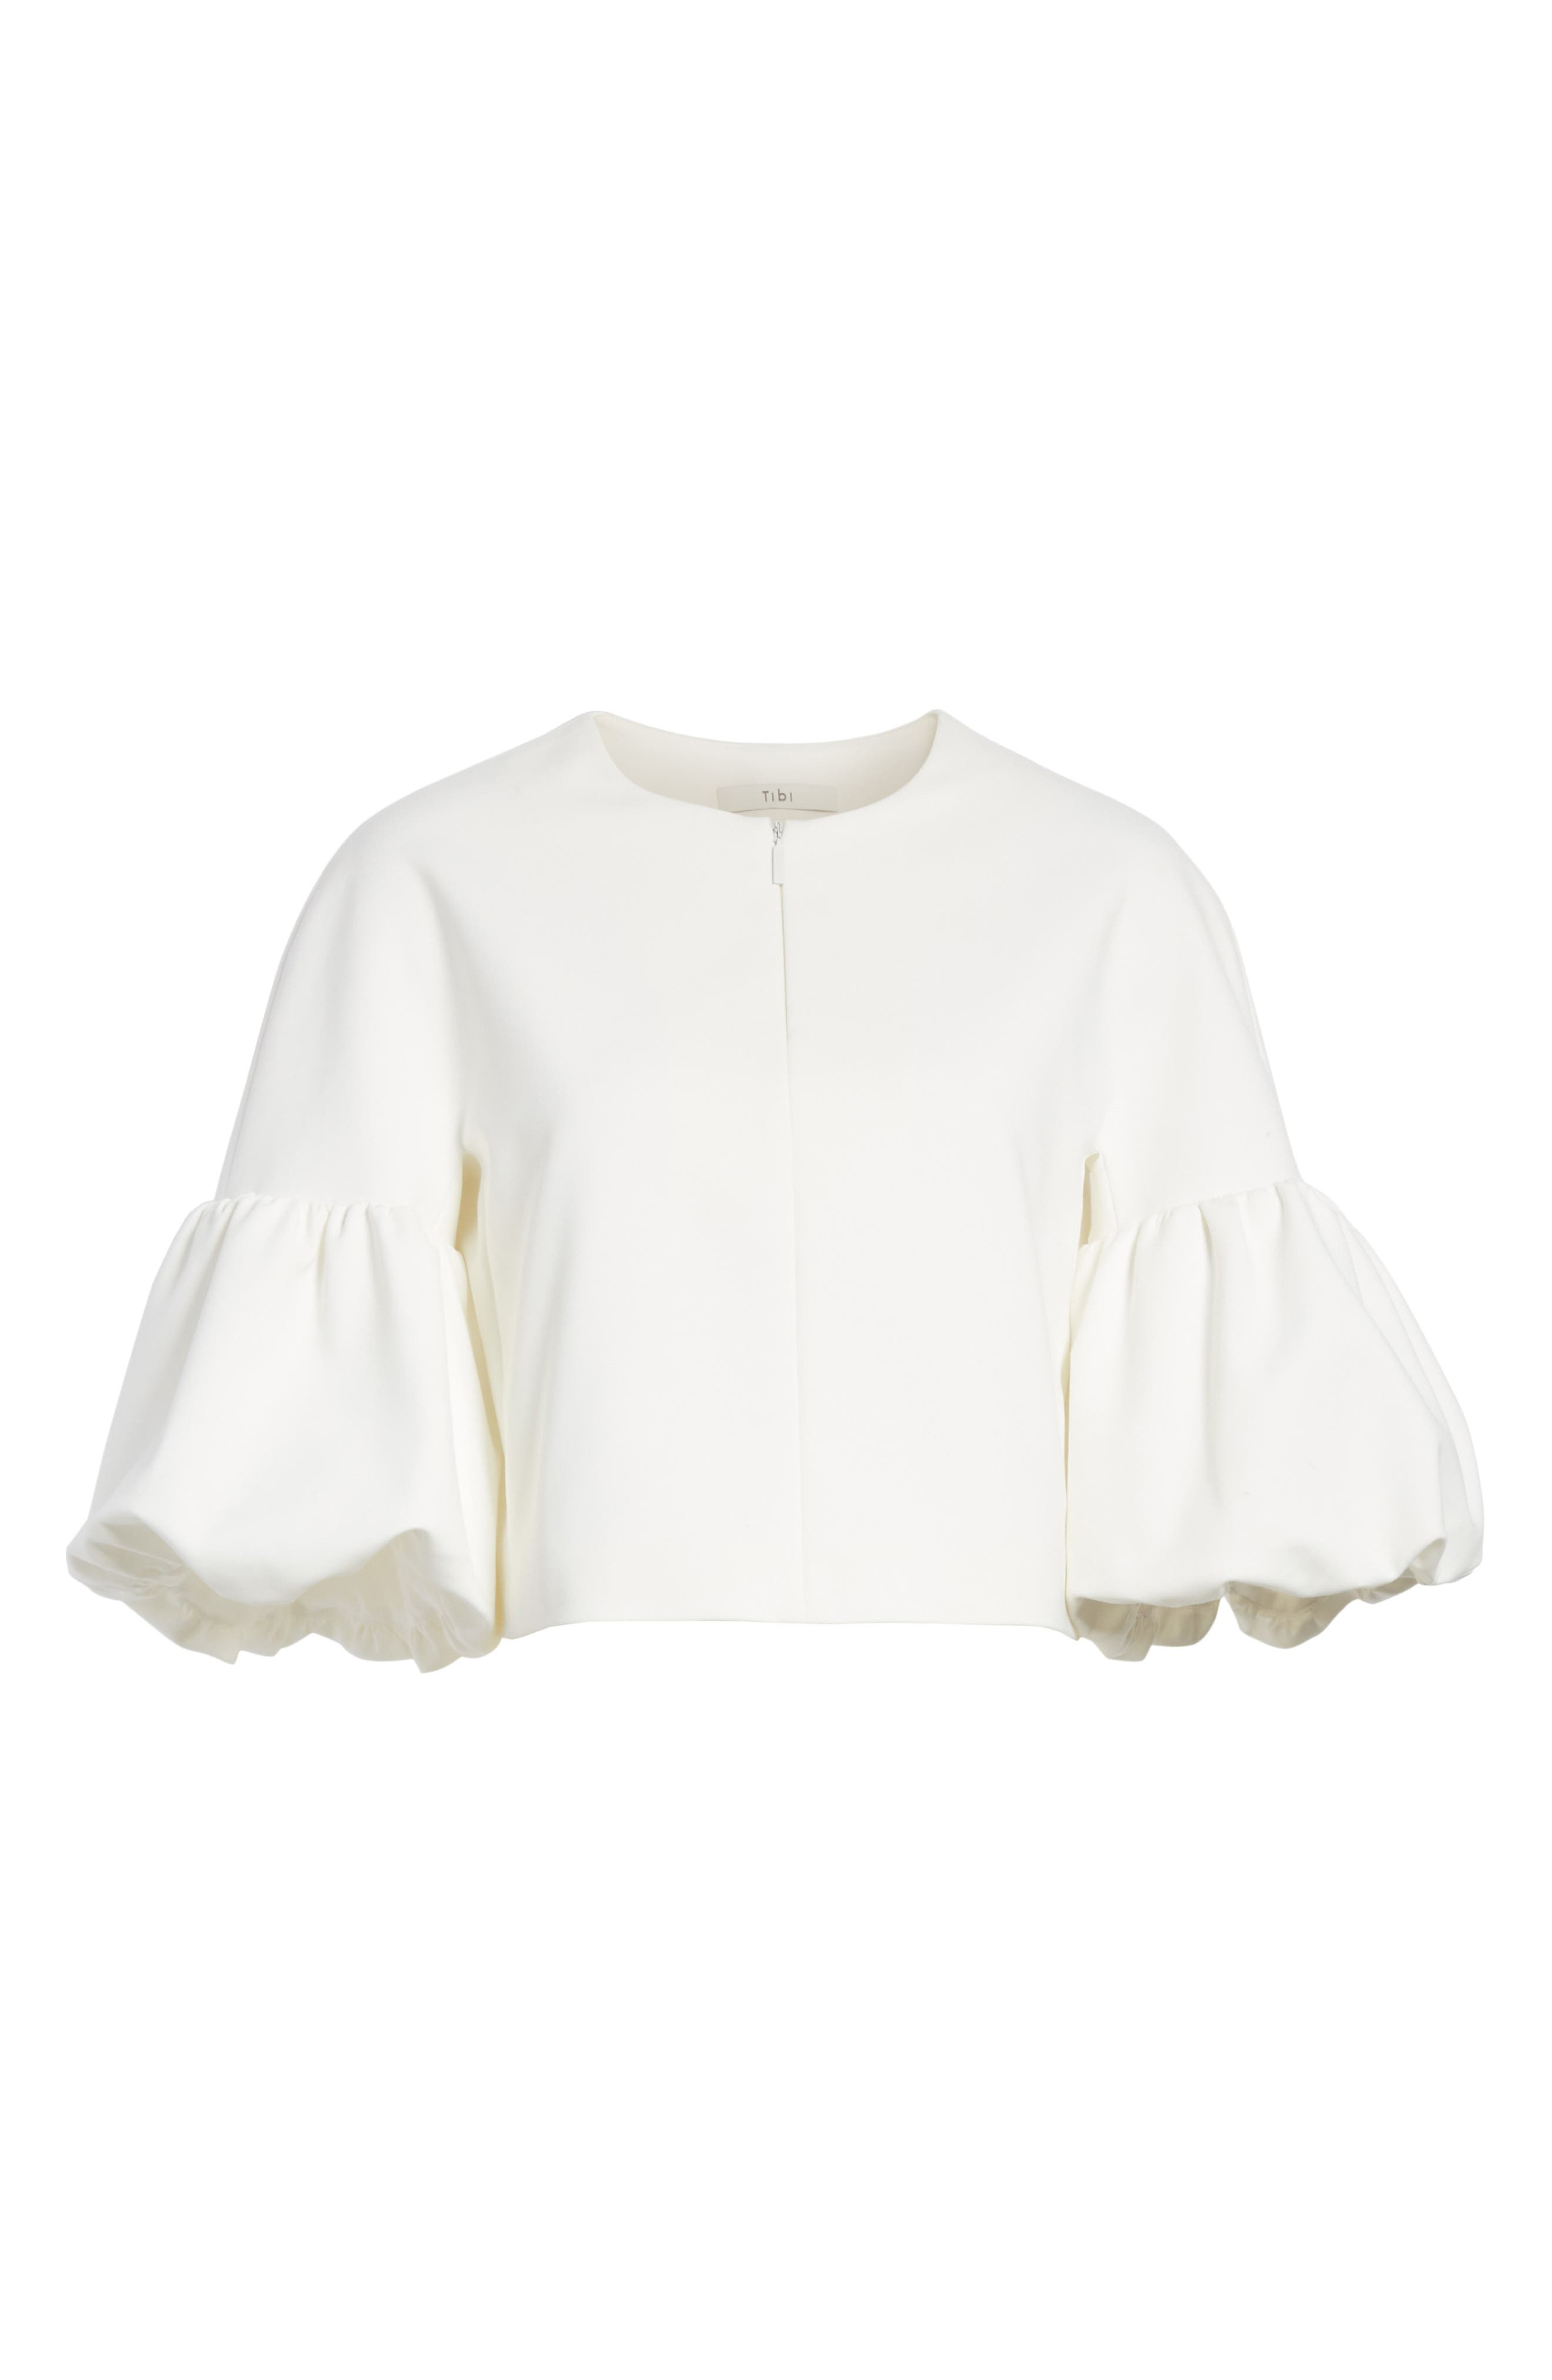 Balloon Sleeve Top,                             Alternate thumbnail 7, color,                             Ivory